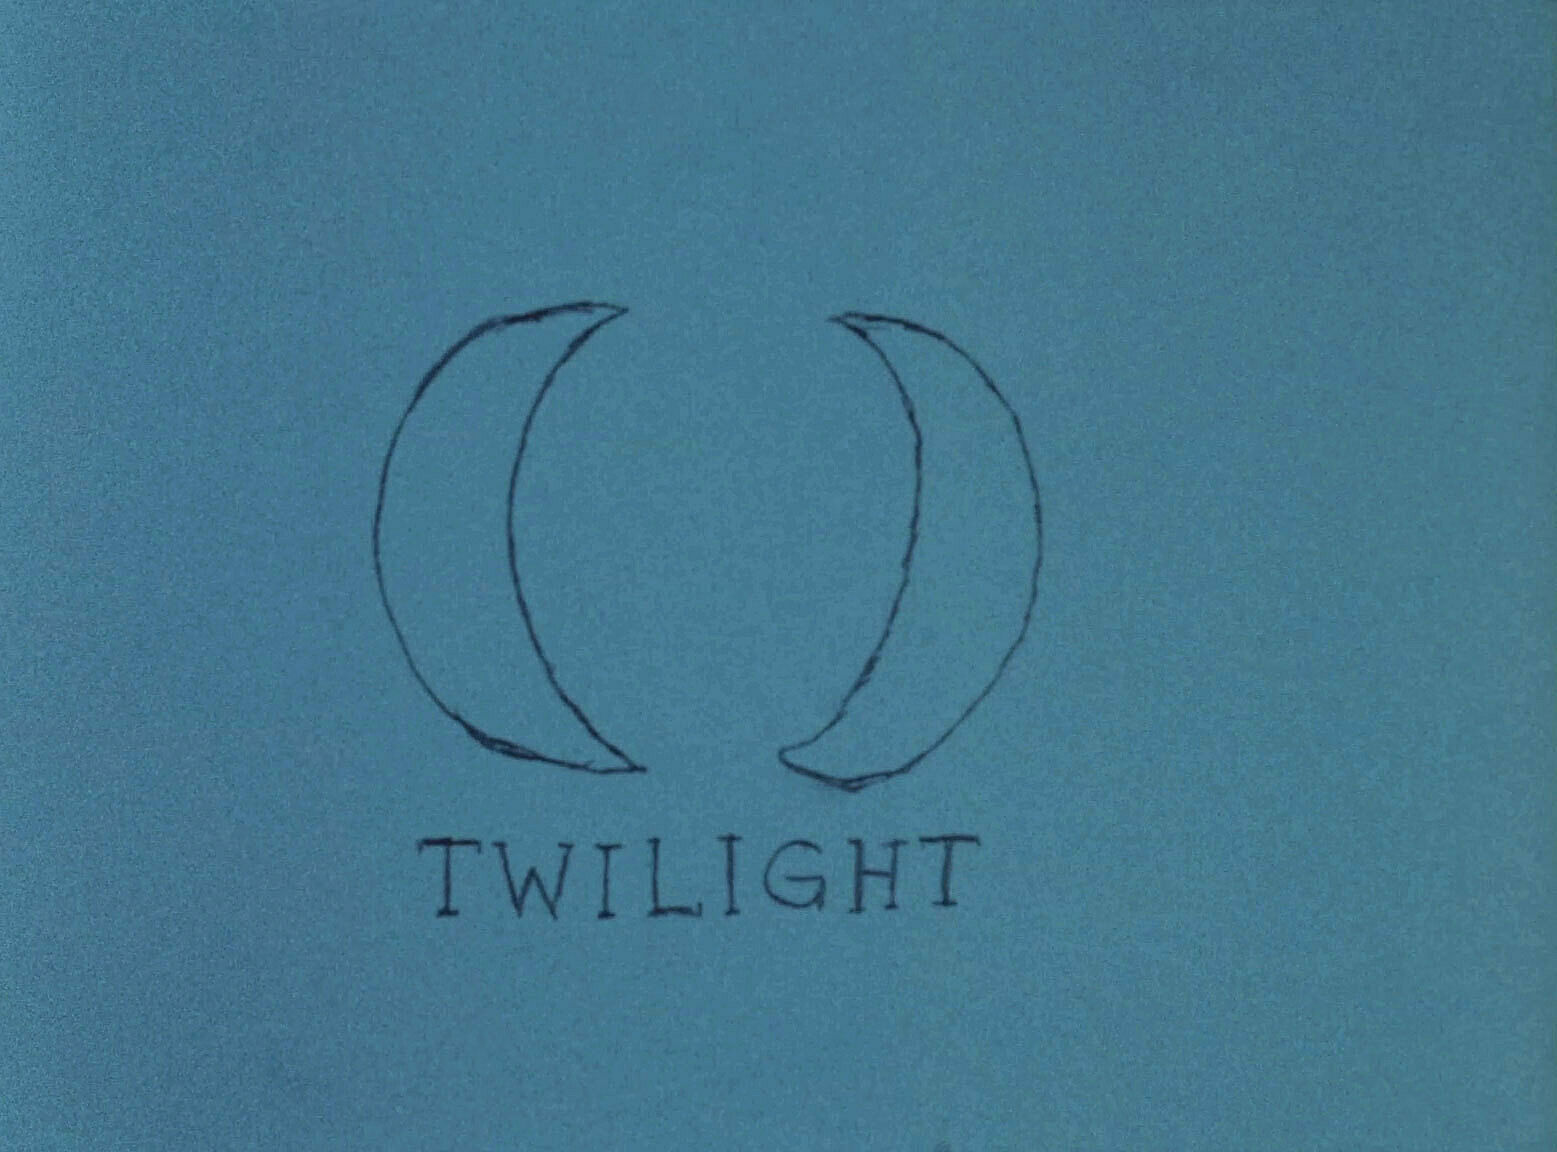 A still from a film work by Jenny Perlin. A hand drawn sketch of two moons and the word 'twilight' against a blue background